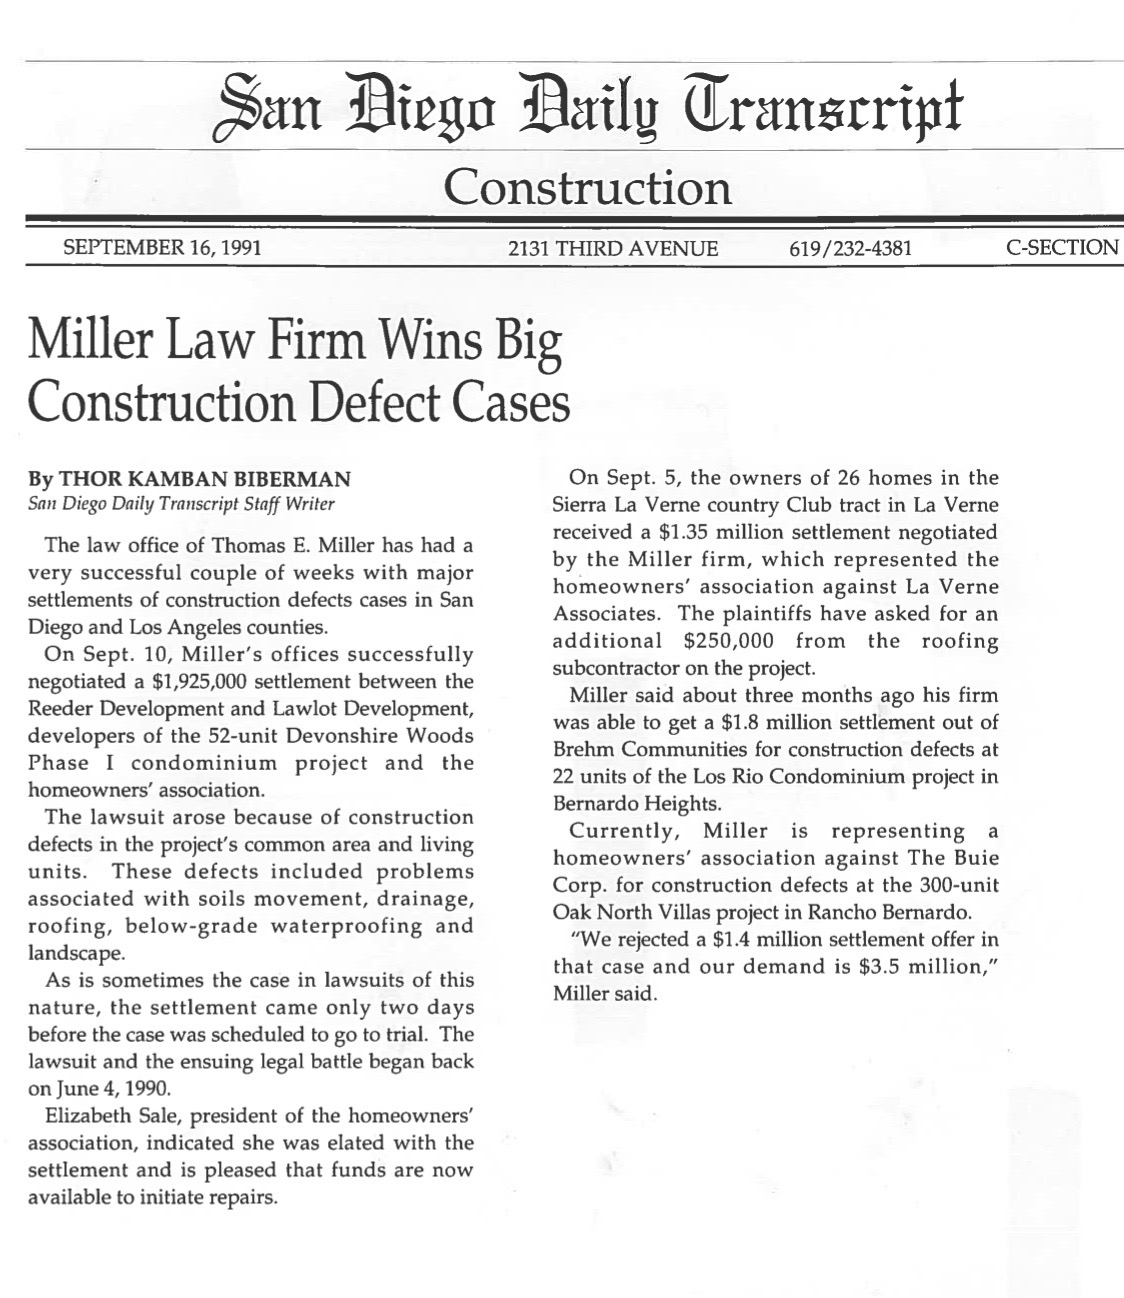 San Diego Daily Transcript - Miller Law Firm Wins Big Construction Defect Cases